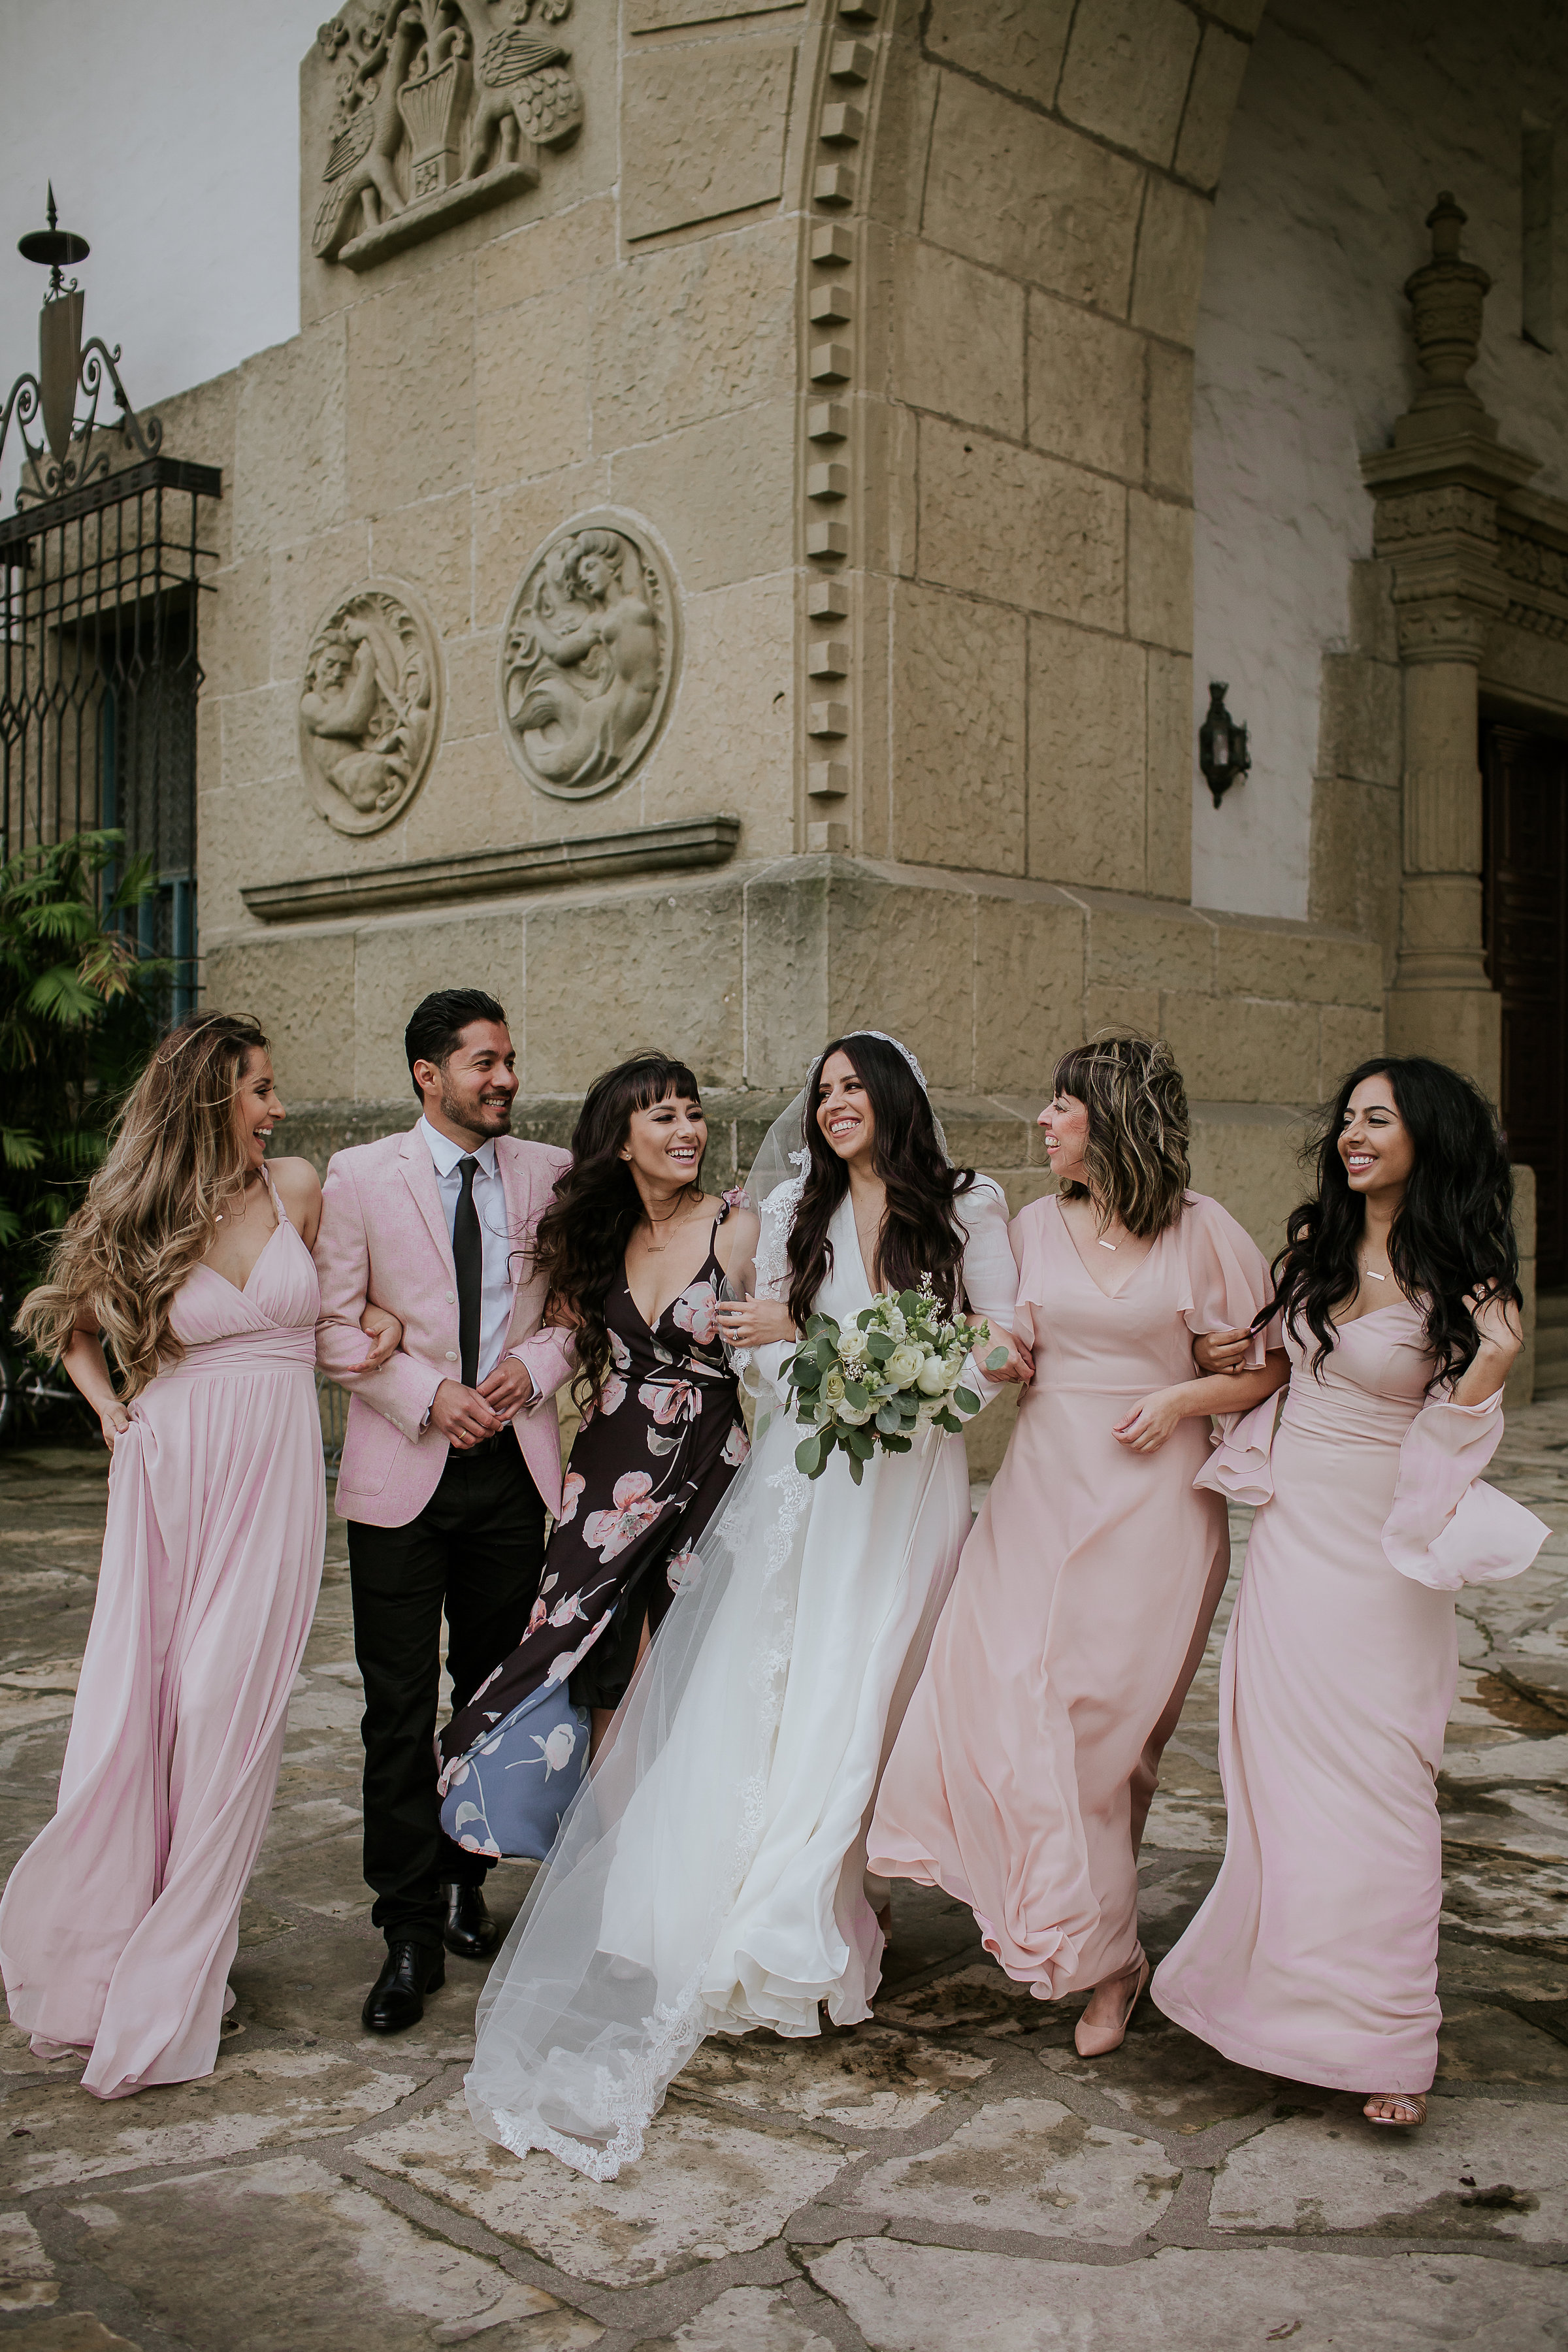 GabrielaandDeJuansantabarbaracourthouseweddingstellamaresweddingelopement-295.jpg